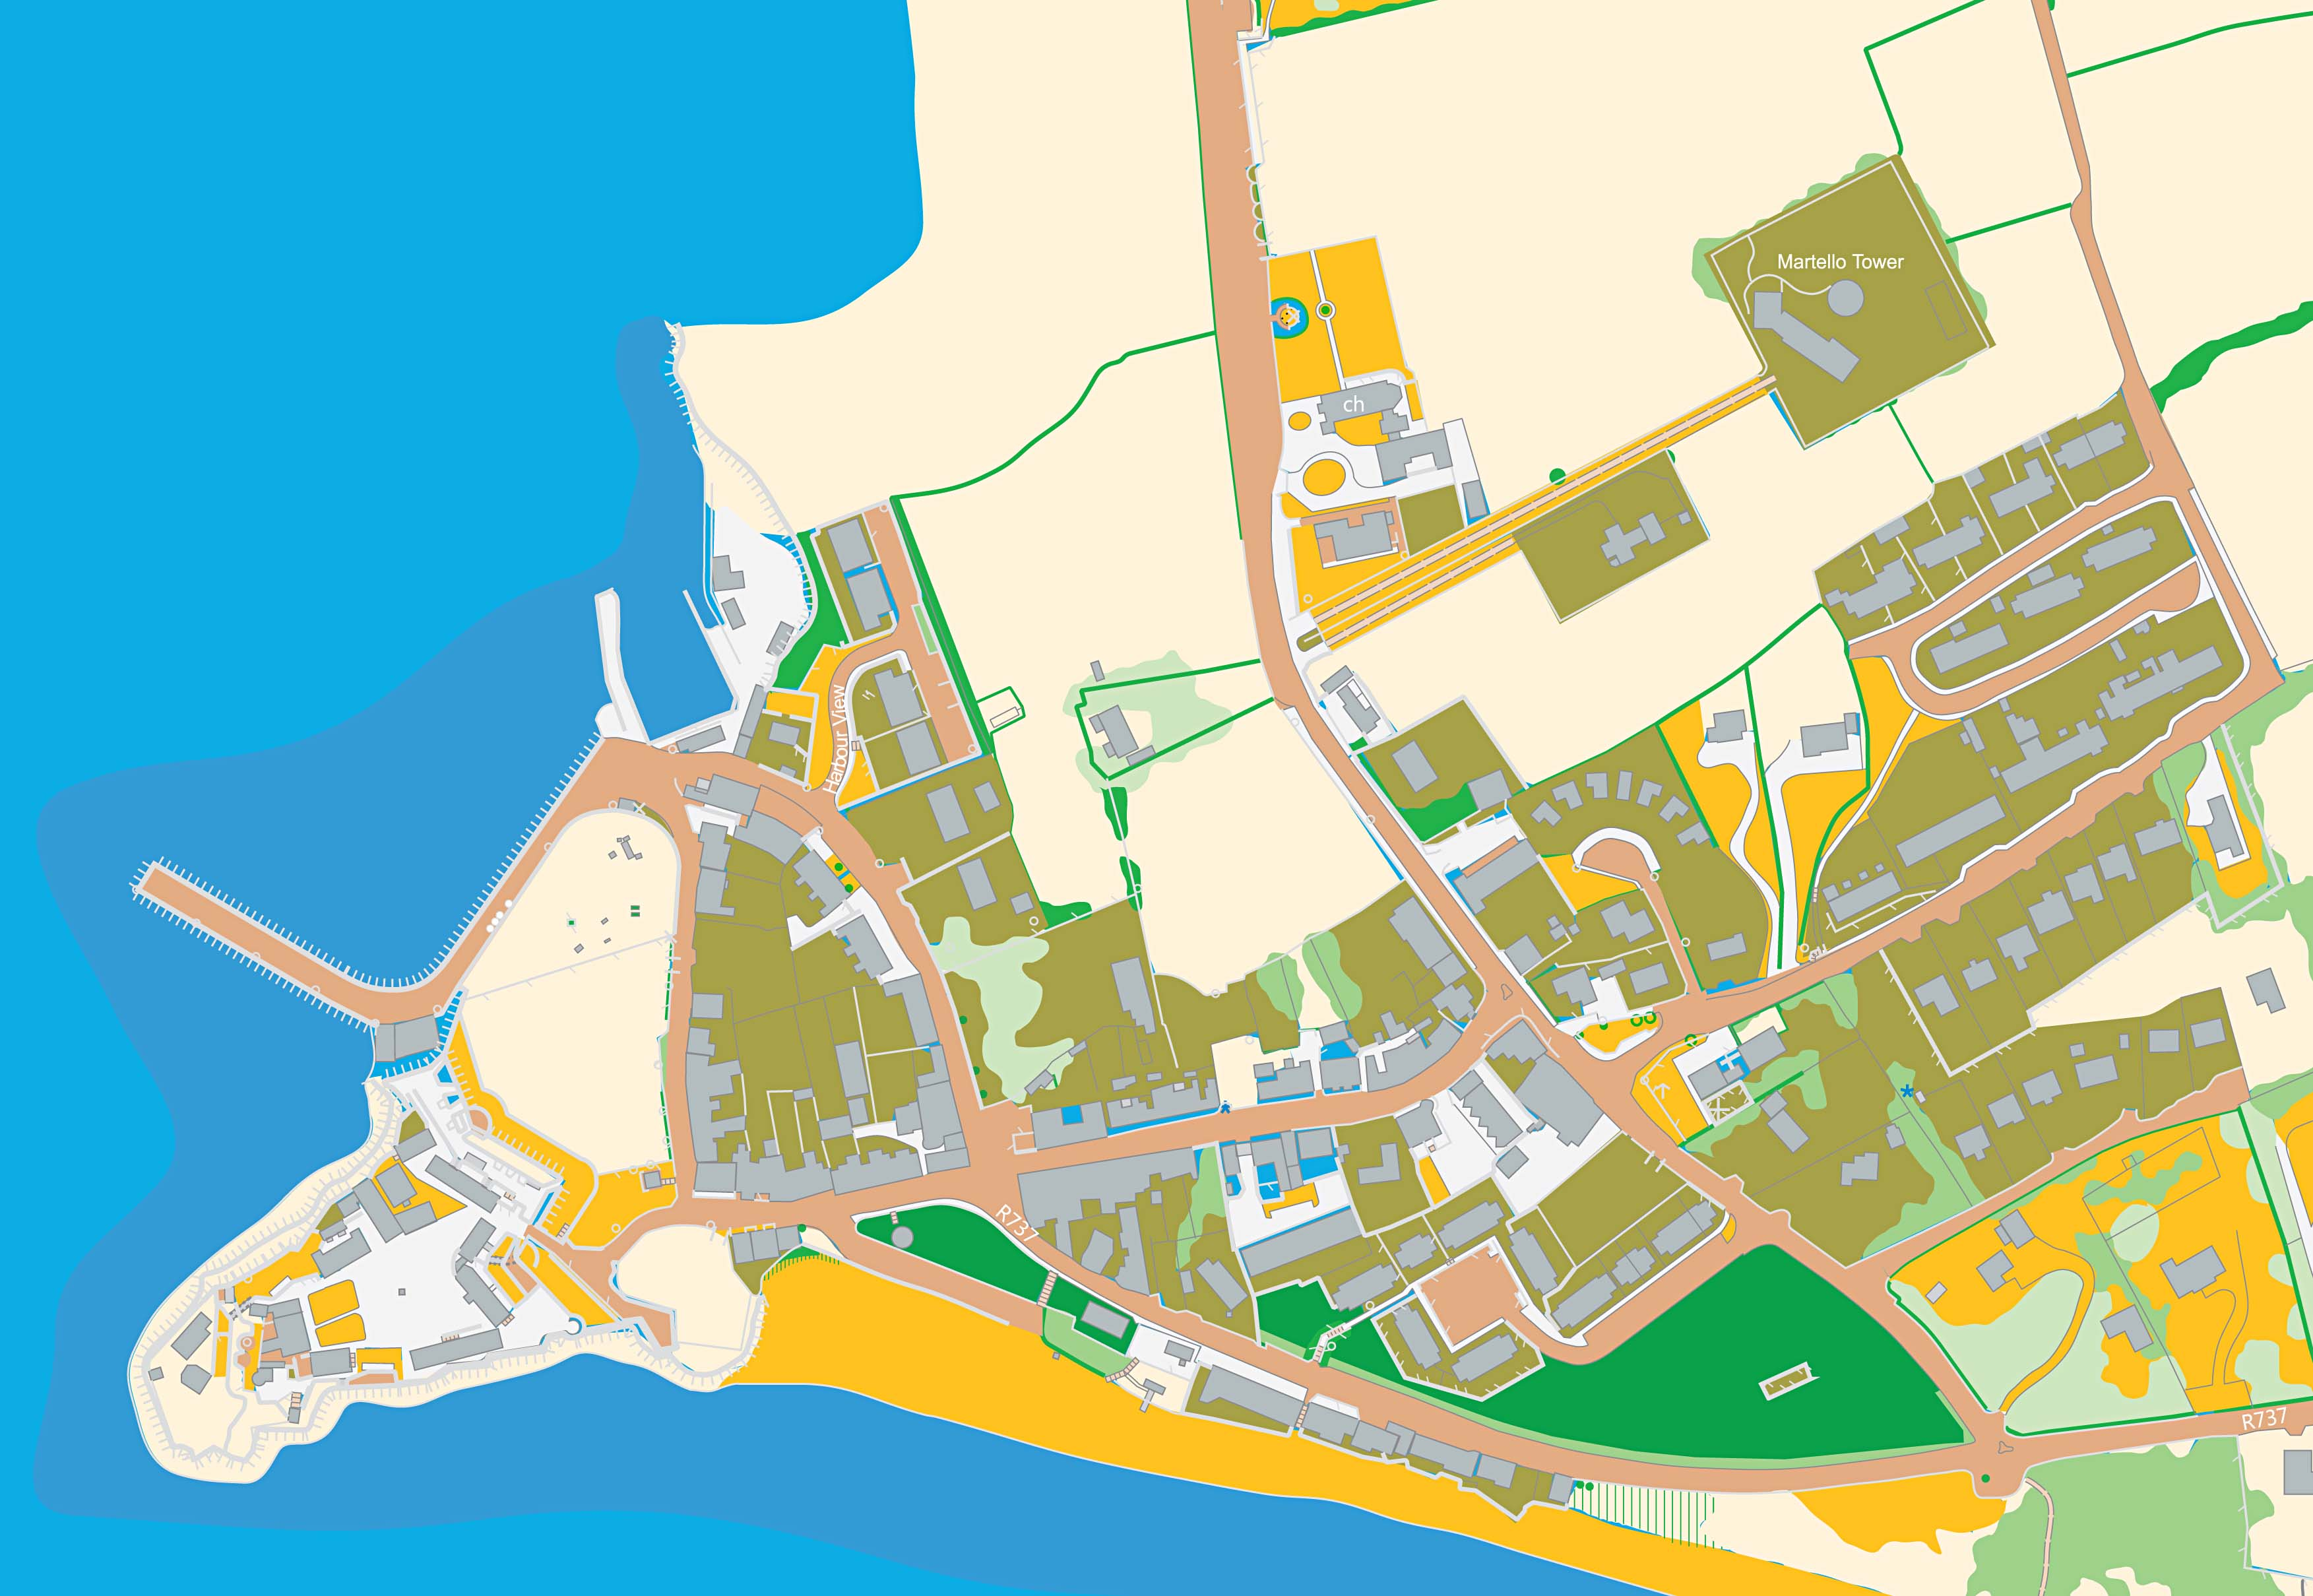 Duncannon Co. Wexford map by The Design Nut